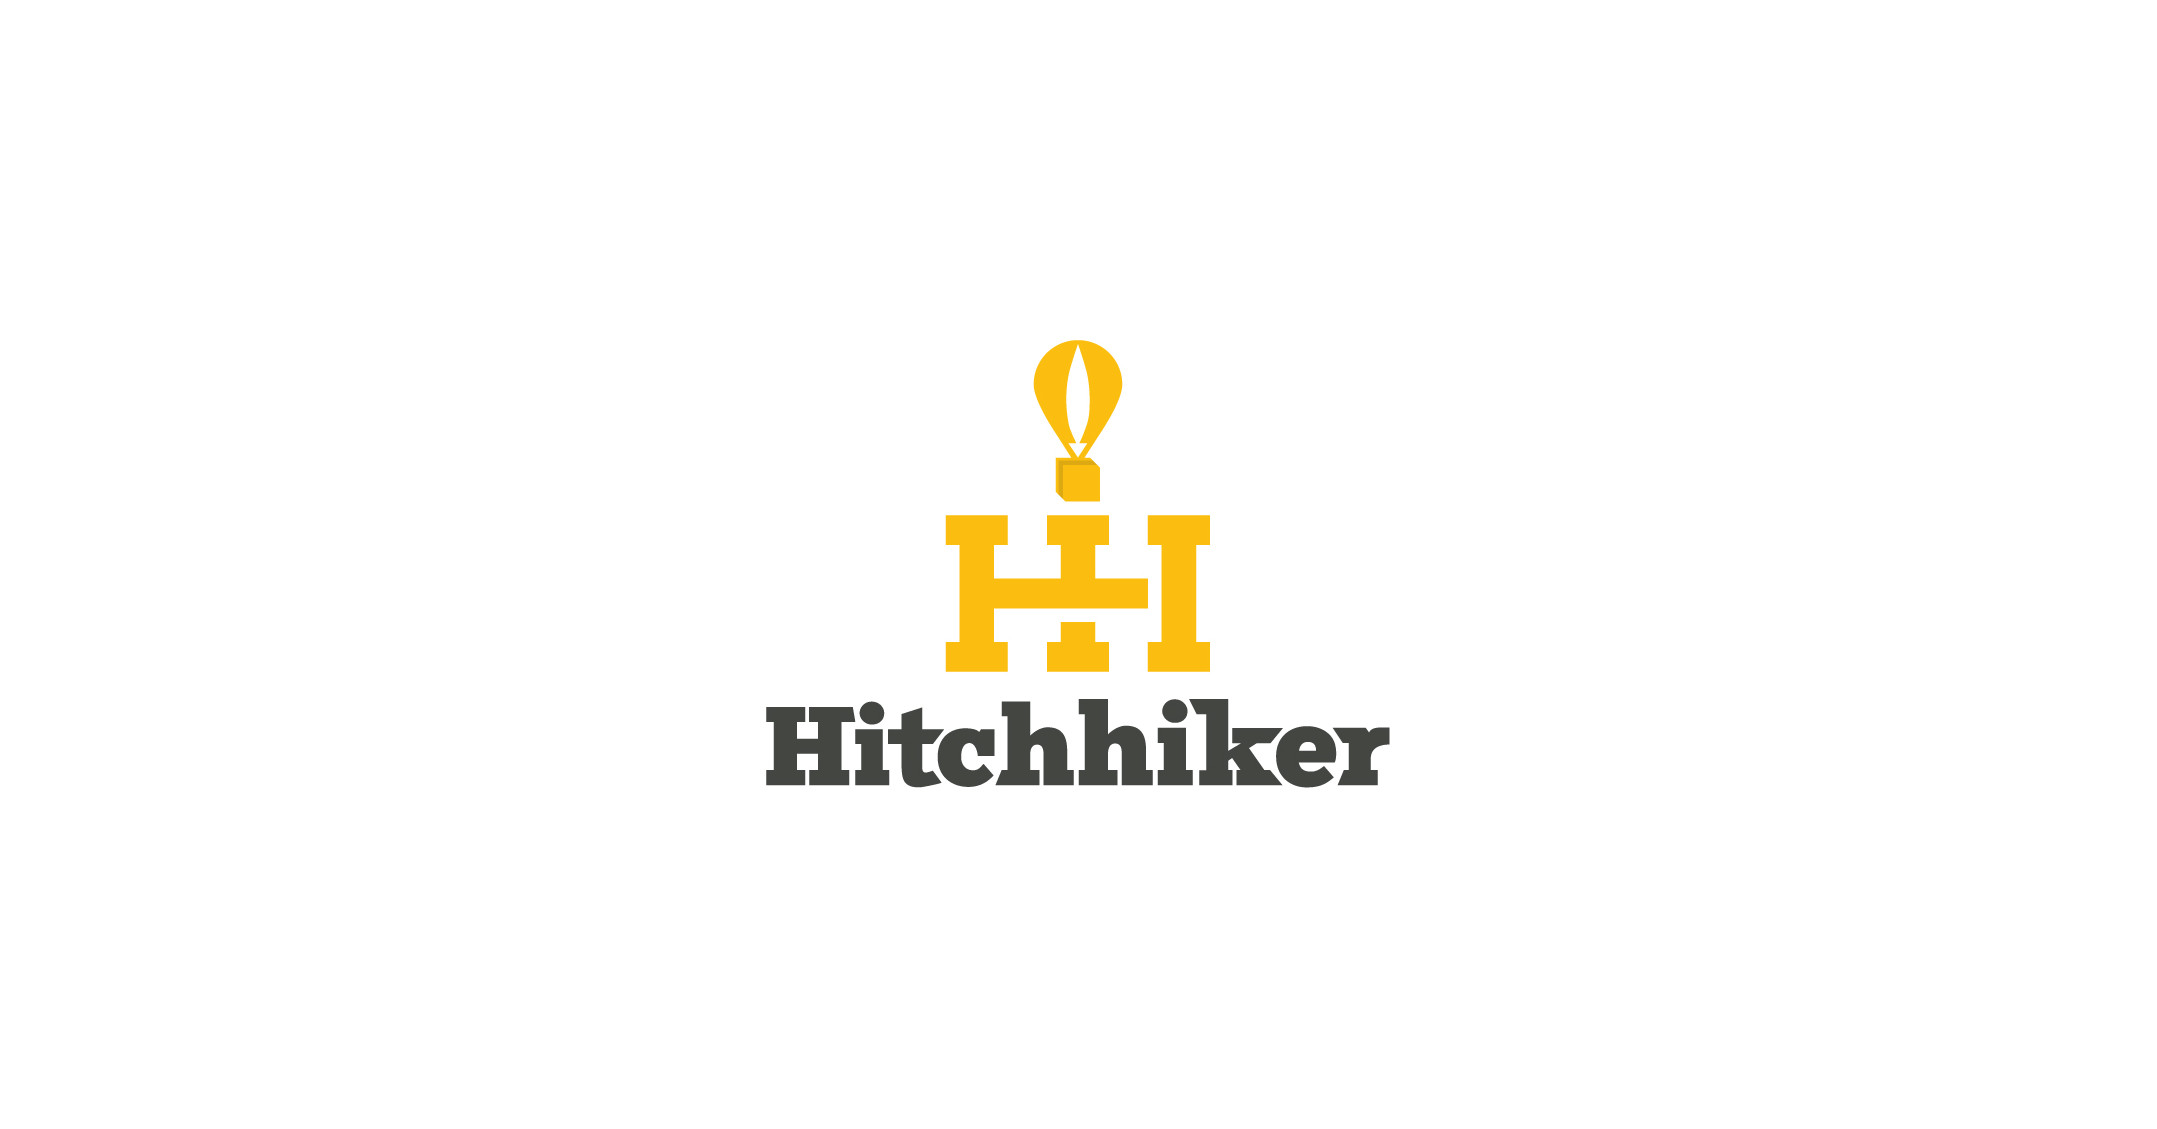 Job: Senior Android Engineer at Hitchhiker in Cairo, Egypt